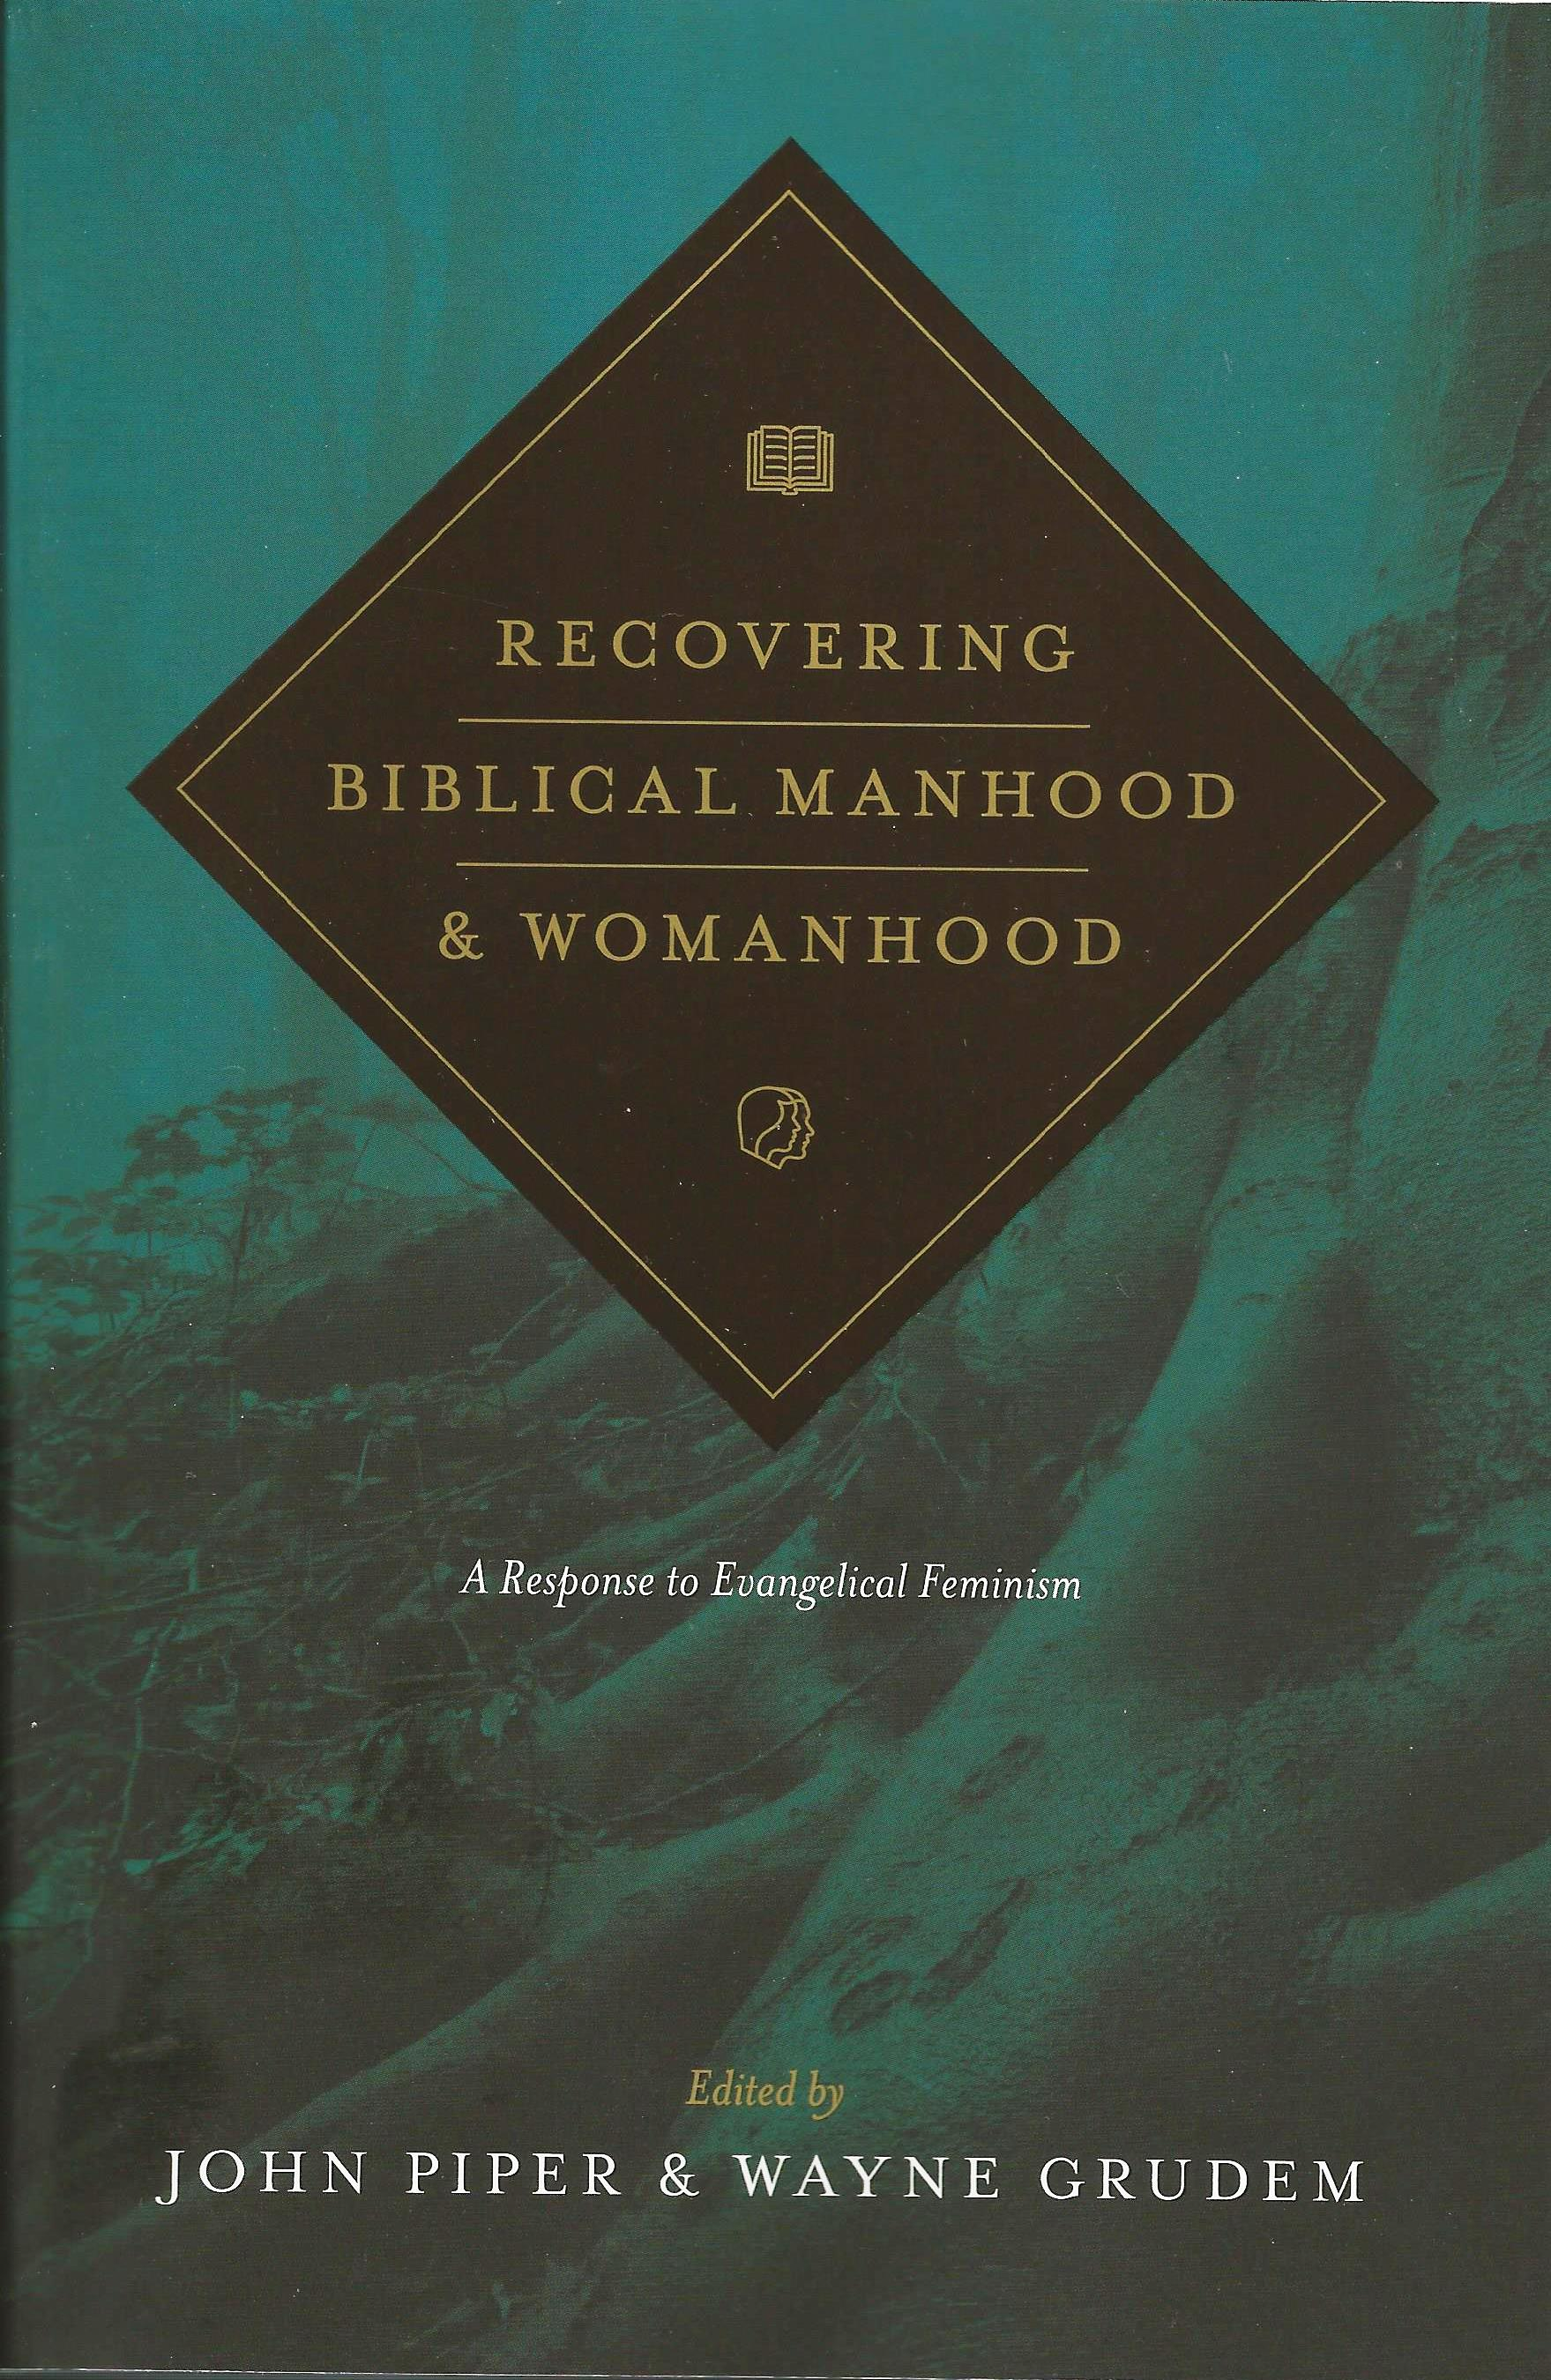 RECOVERING BIBLICAL MANHOOD & WOMANHOOD John Piper